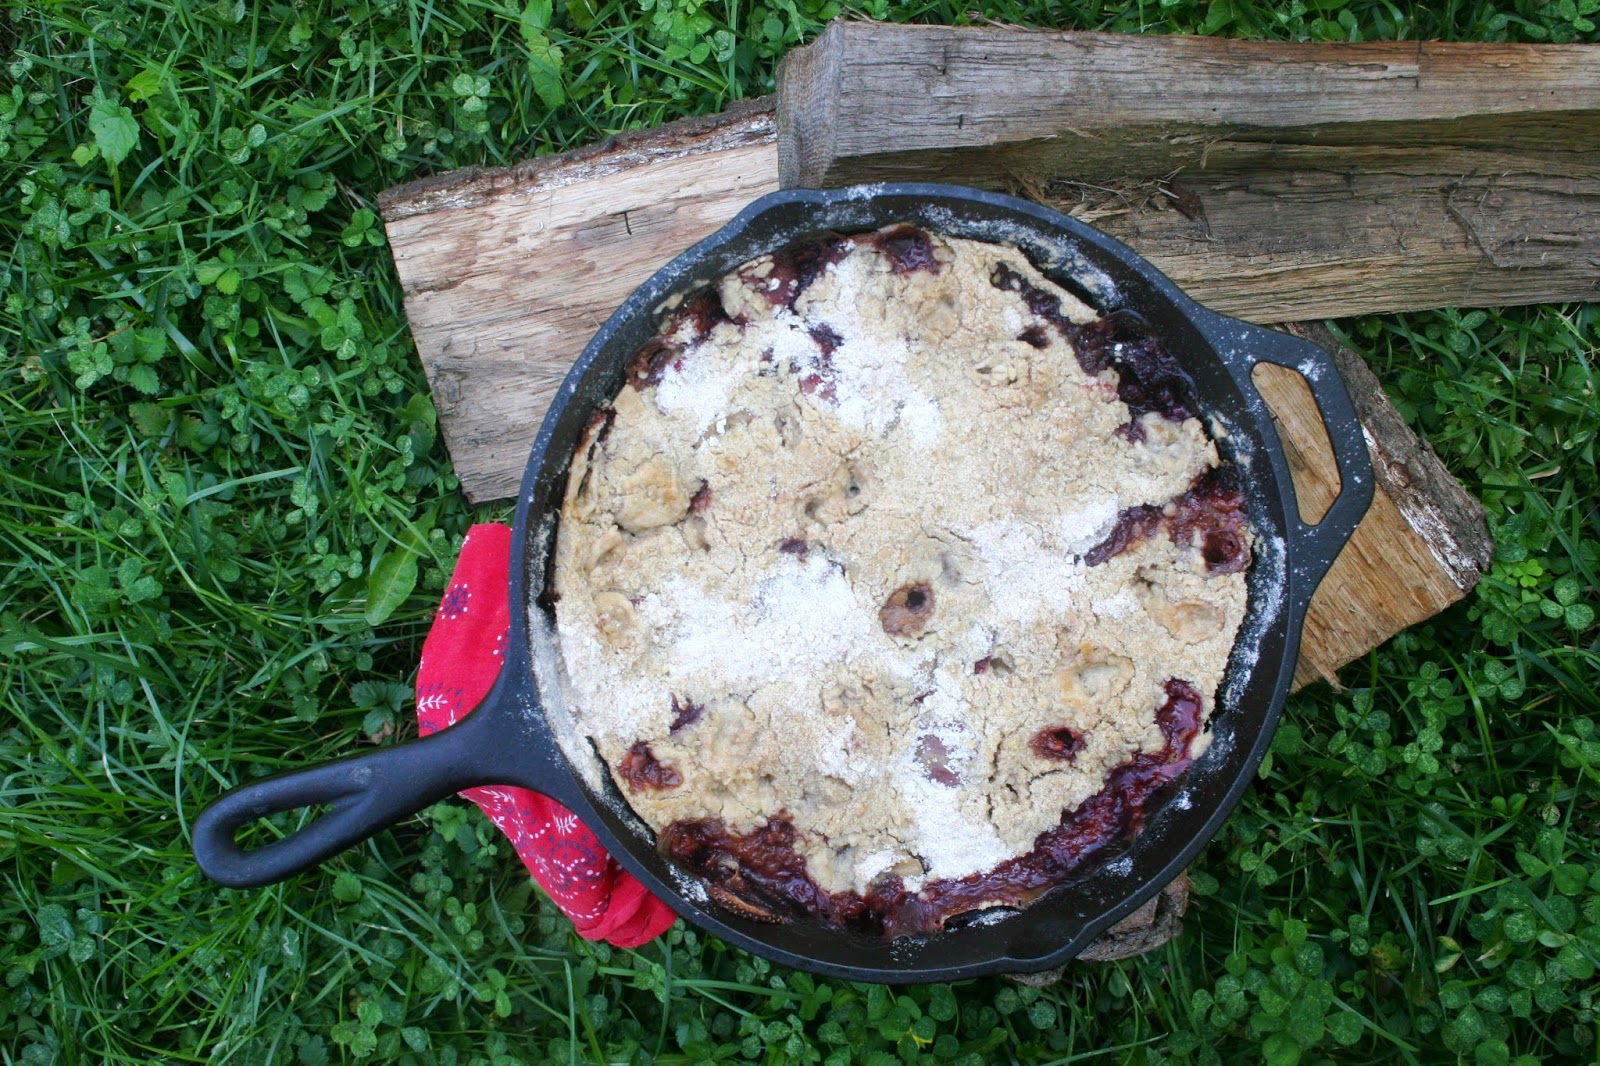 Campfire Skillet Crisp with Strawberries and Bananas